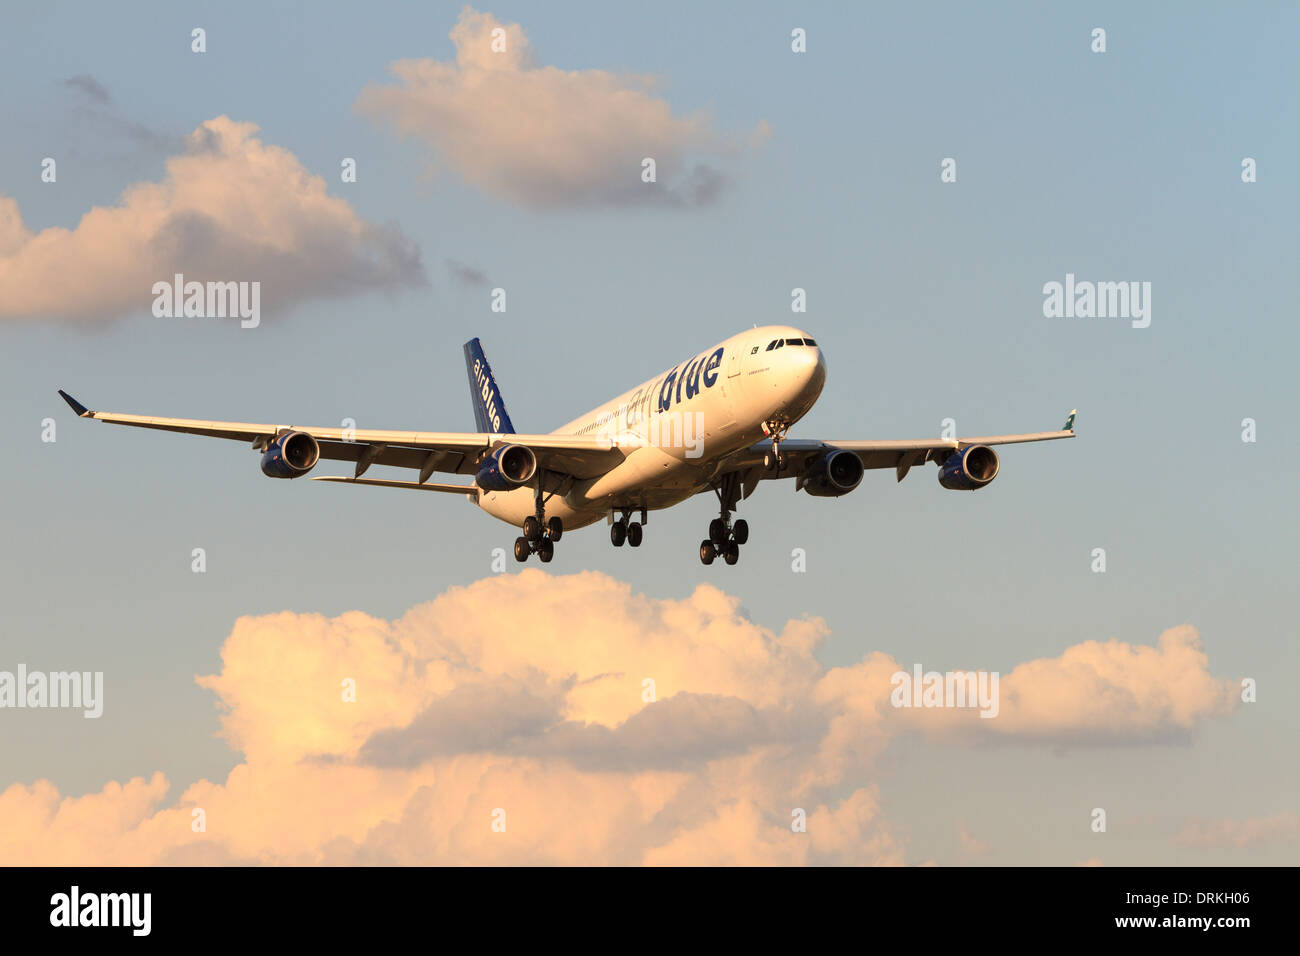 Airblue Airbus A340 plane to land - Stock Image